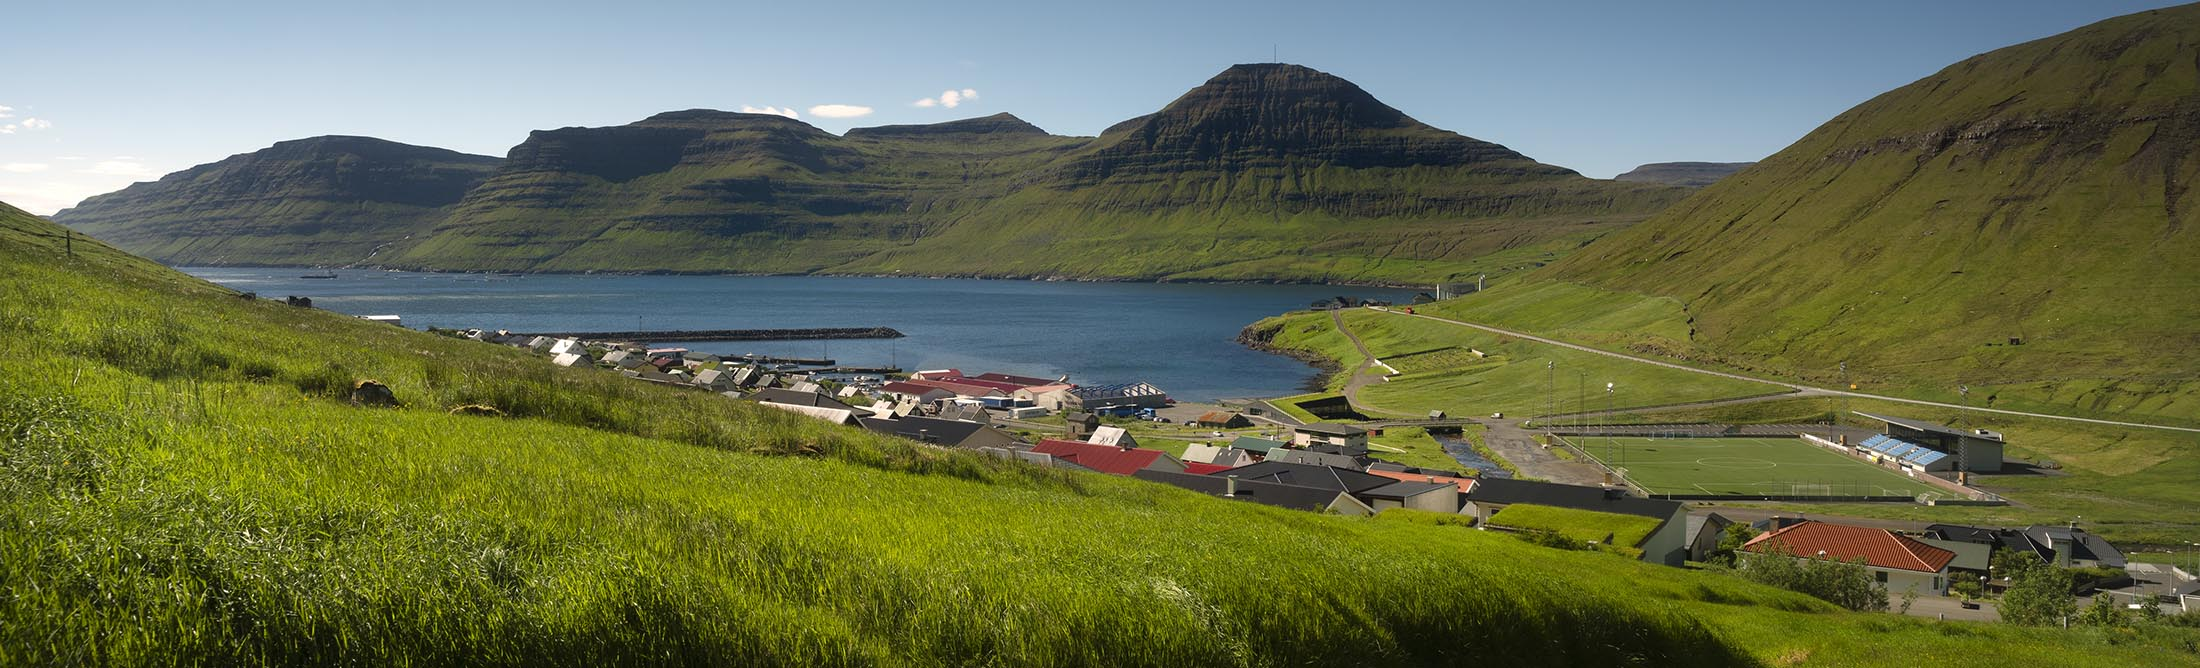 Why You Need to Go to the Faroe Islands, in 13 Stunning Images - Bloomberg